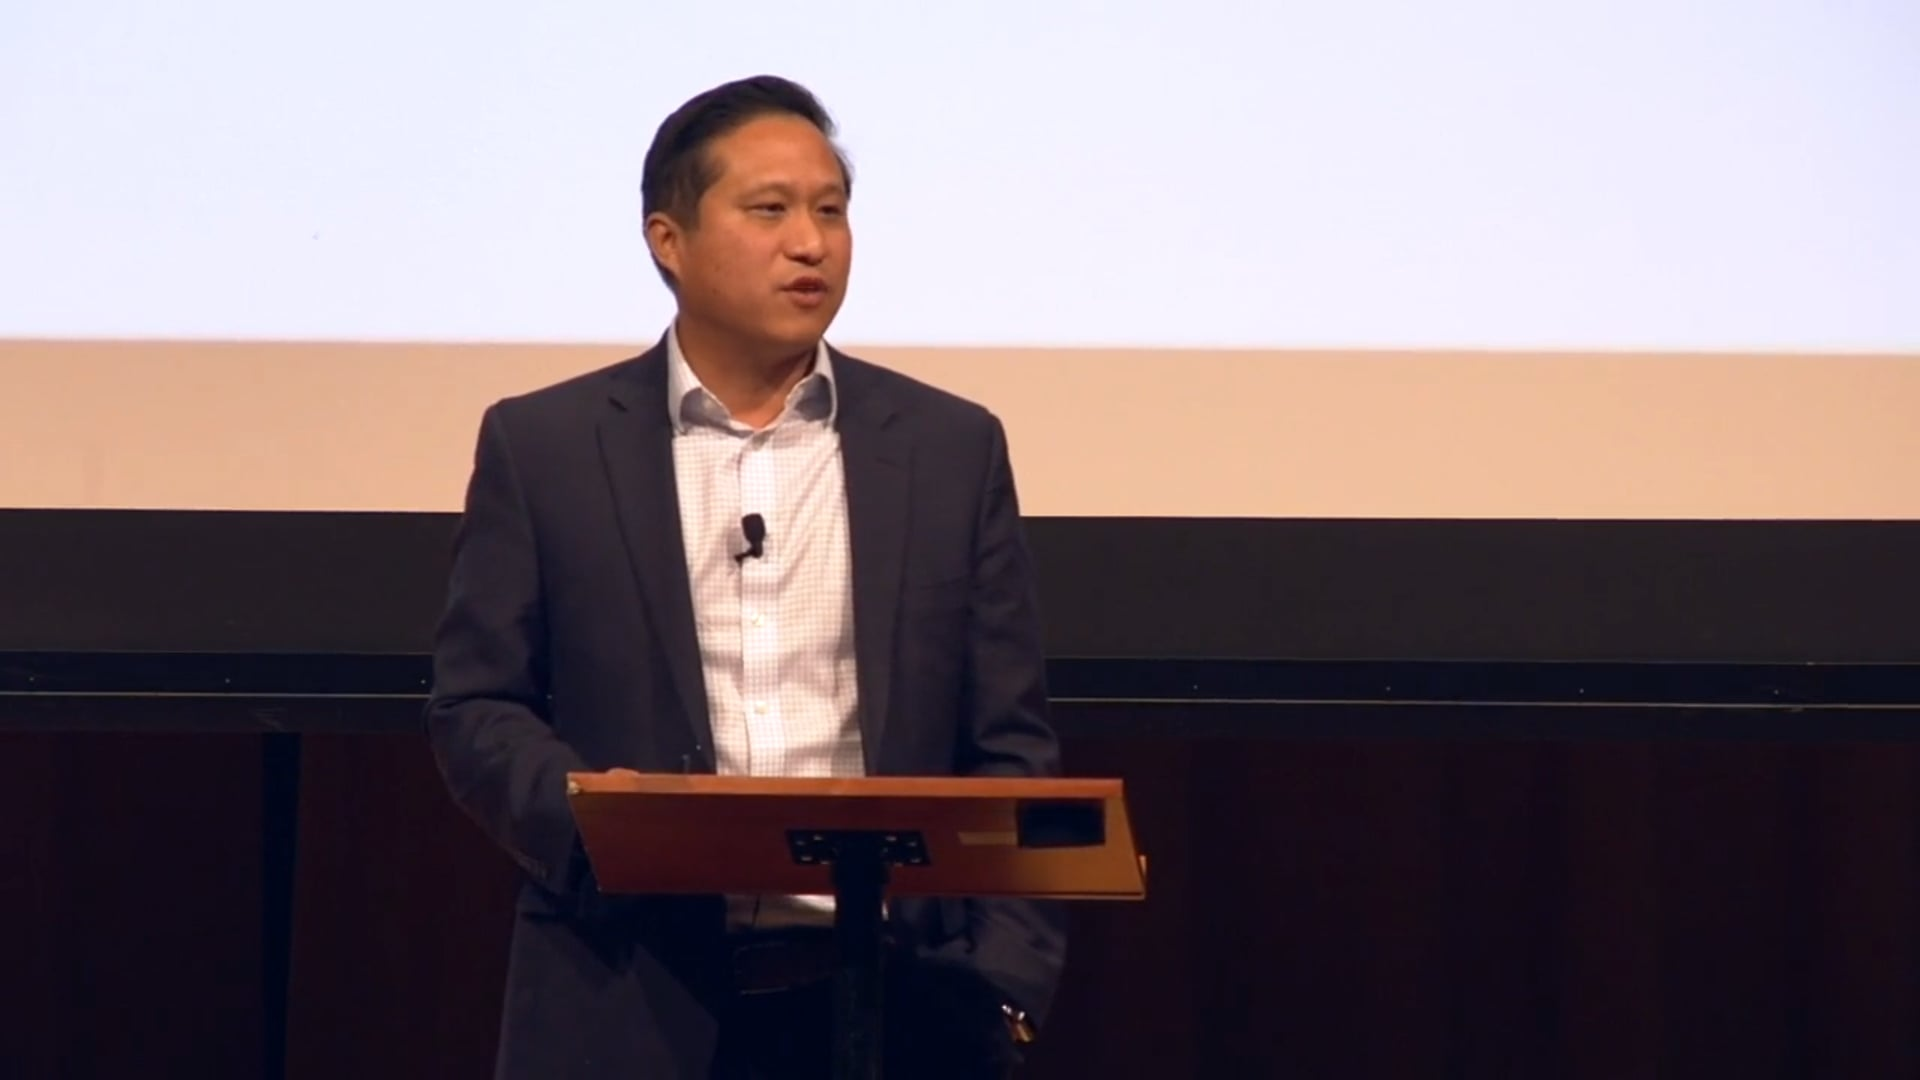 Does Your Ministry Impact Your Mental Health?-Dr. David Wang